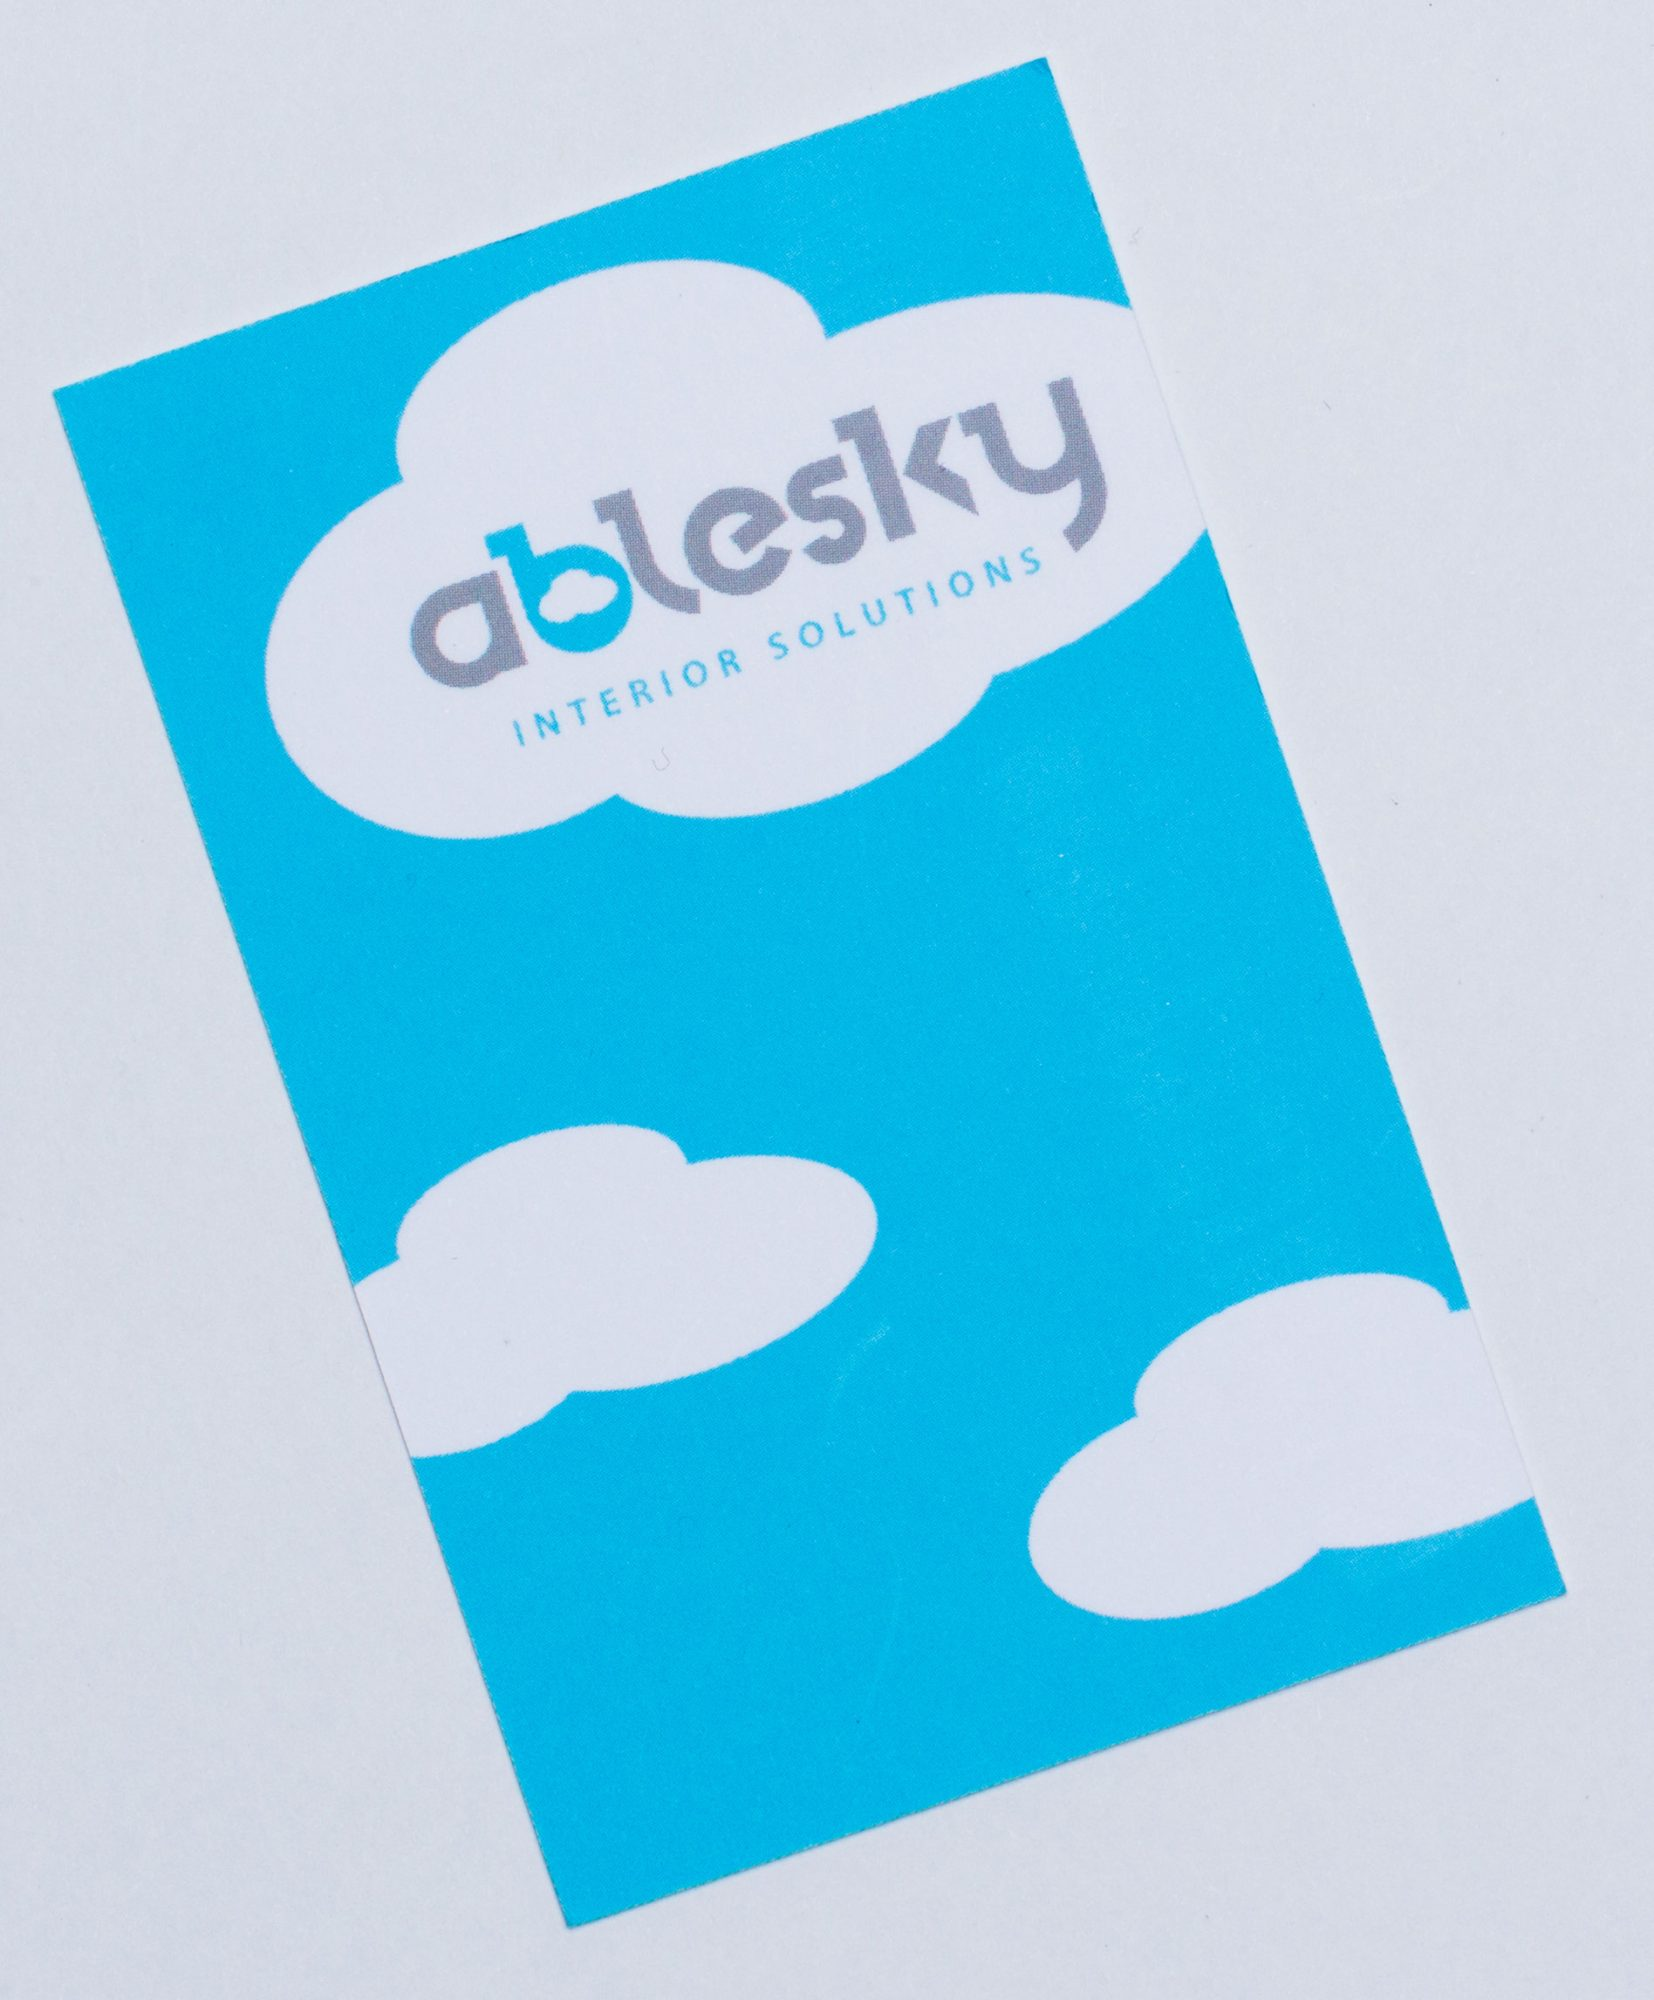 Ablesky Interior Solutions